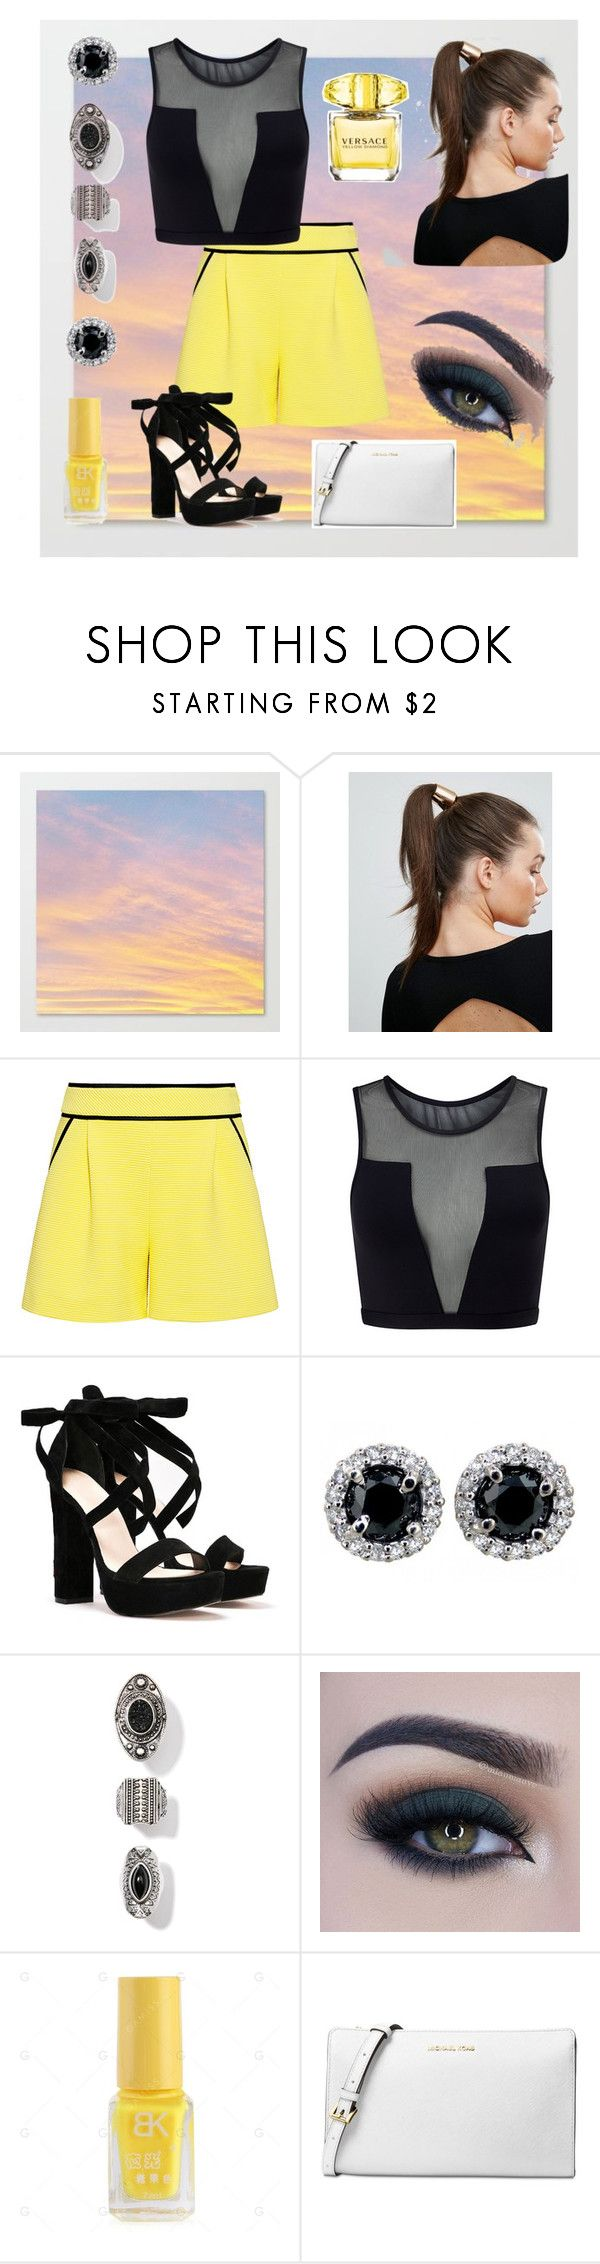 """Yellow!!! Favorite color!!! 💛☀️"" by joziee ❤ liked on Polyvore featuring Johnny Loves Rosie, A.L.C., Varley, Nasty Gal, Too Faced Cosmetics, Michael Kors and Versace"